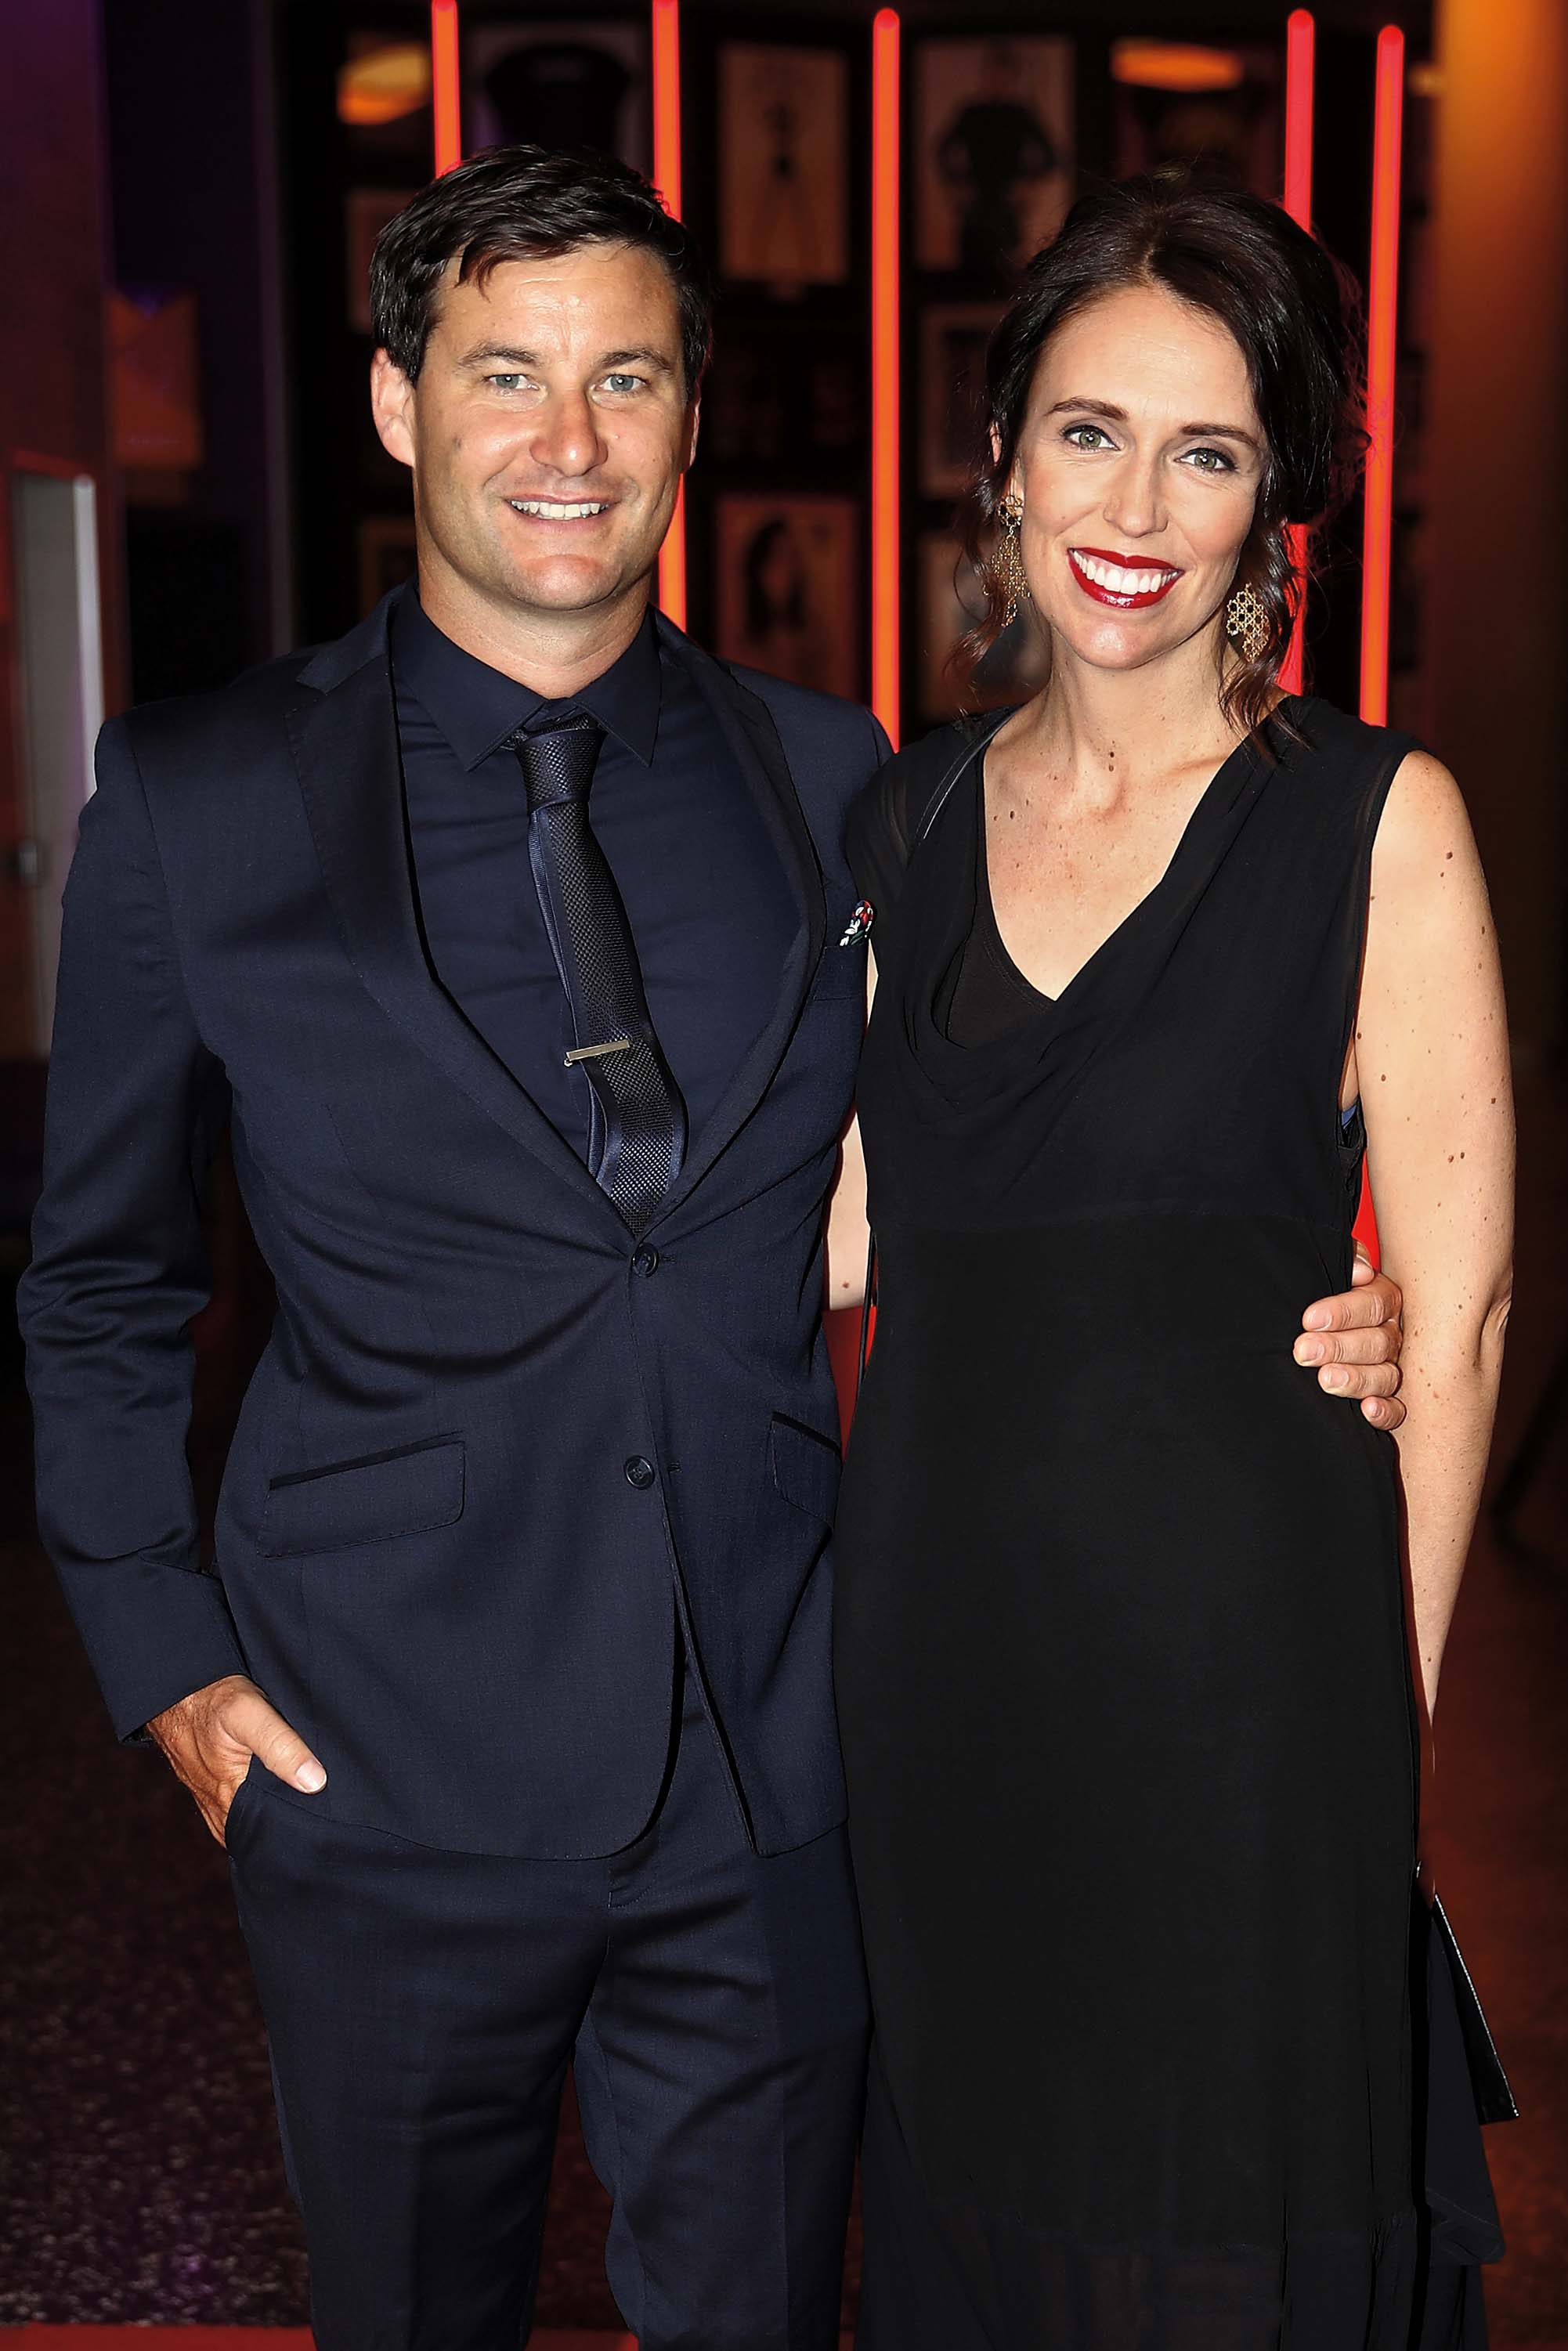 AUCKLAND, NEW ZEALAND - FEBRUARY 08:  Prime Minister Jacinda Ardern and partner Clarke Gayford arrive ahead of the 55th Halberg Awards at Spark Arena on February 8, 2018 in Auckland, New Zealand.  (Photo by Phil Walter/Getty Images)